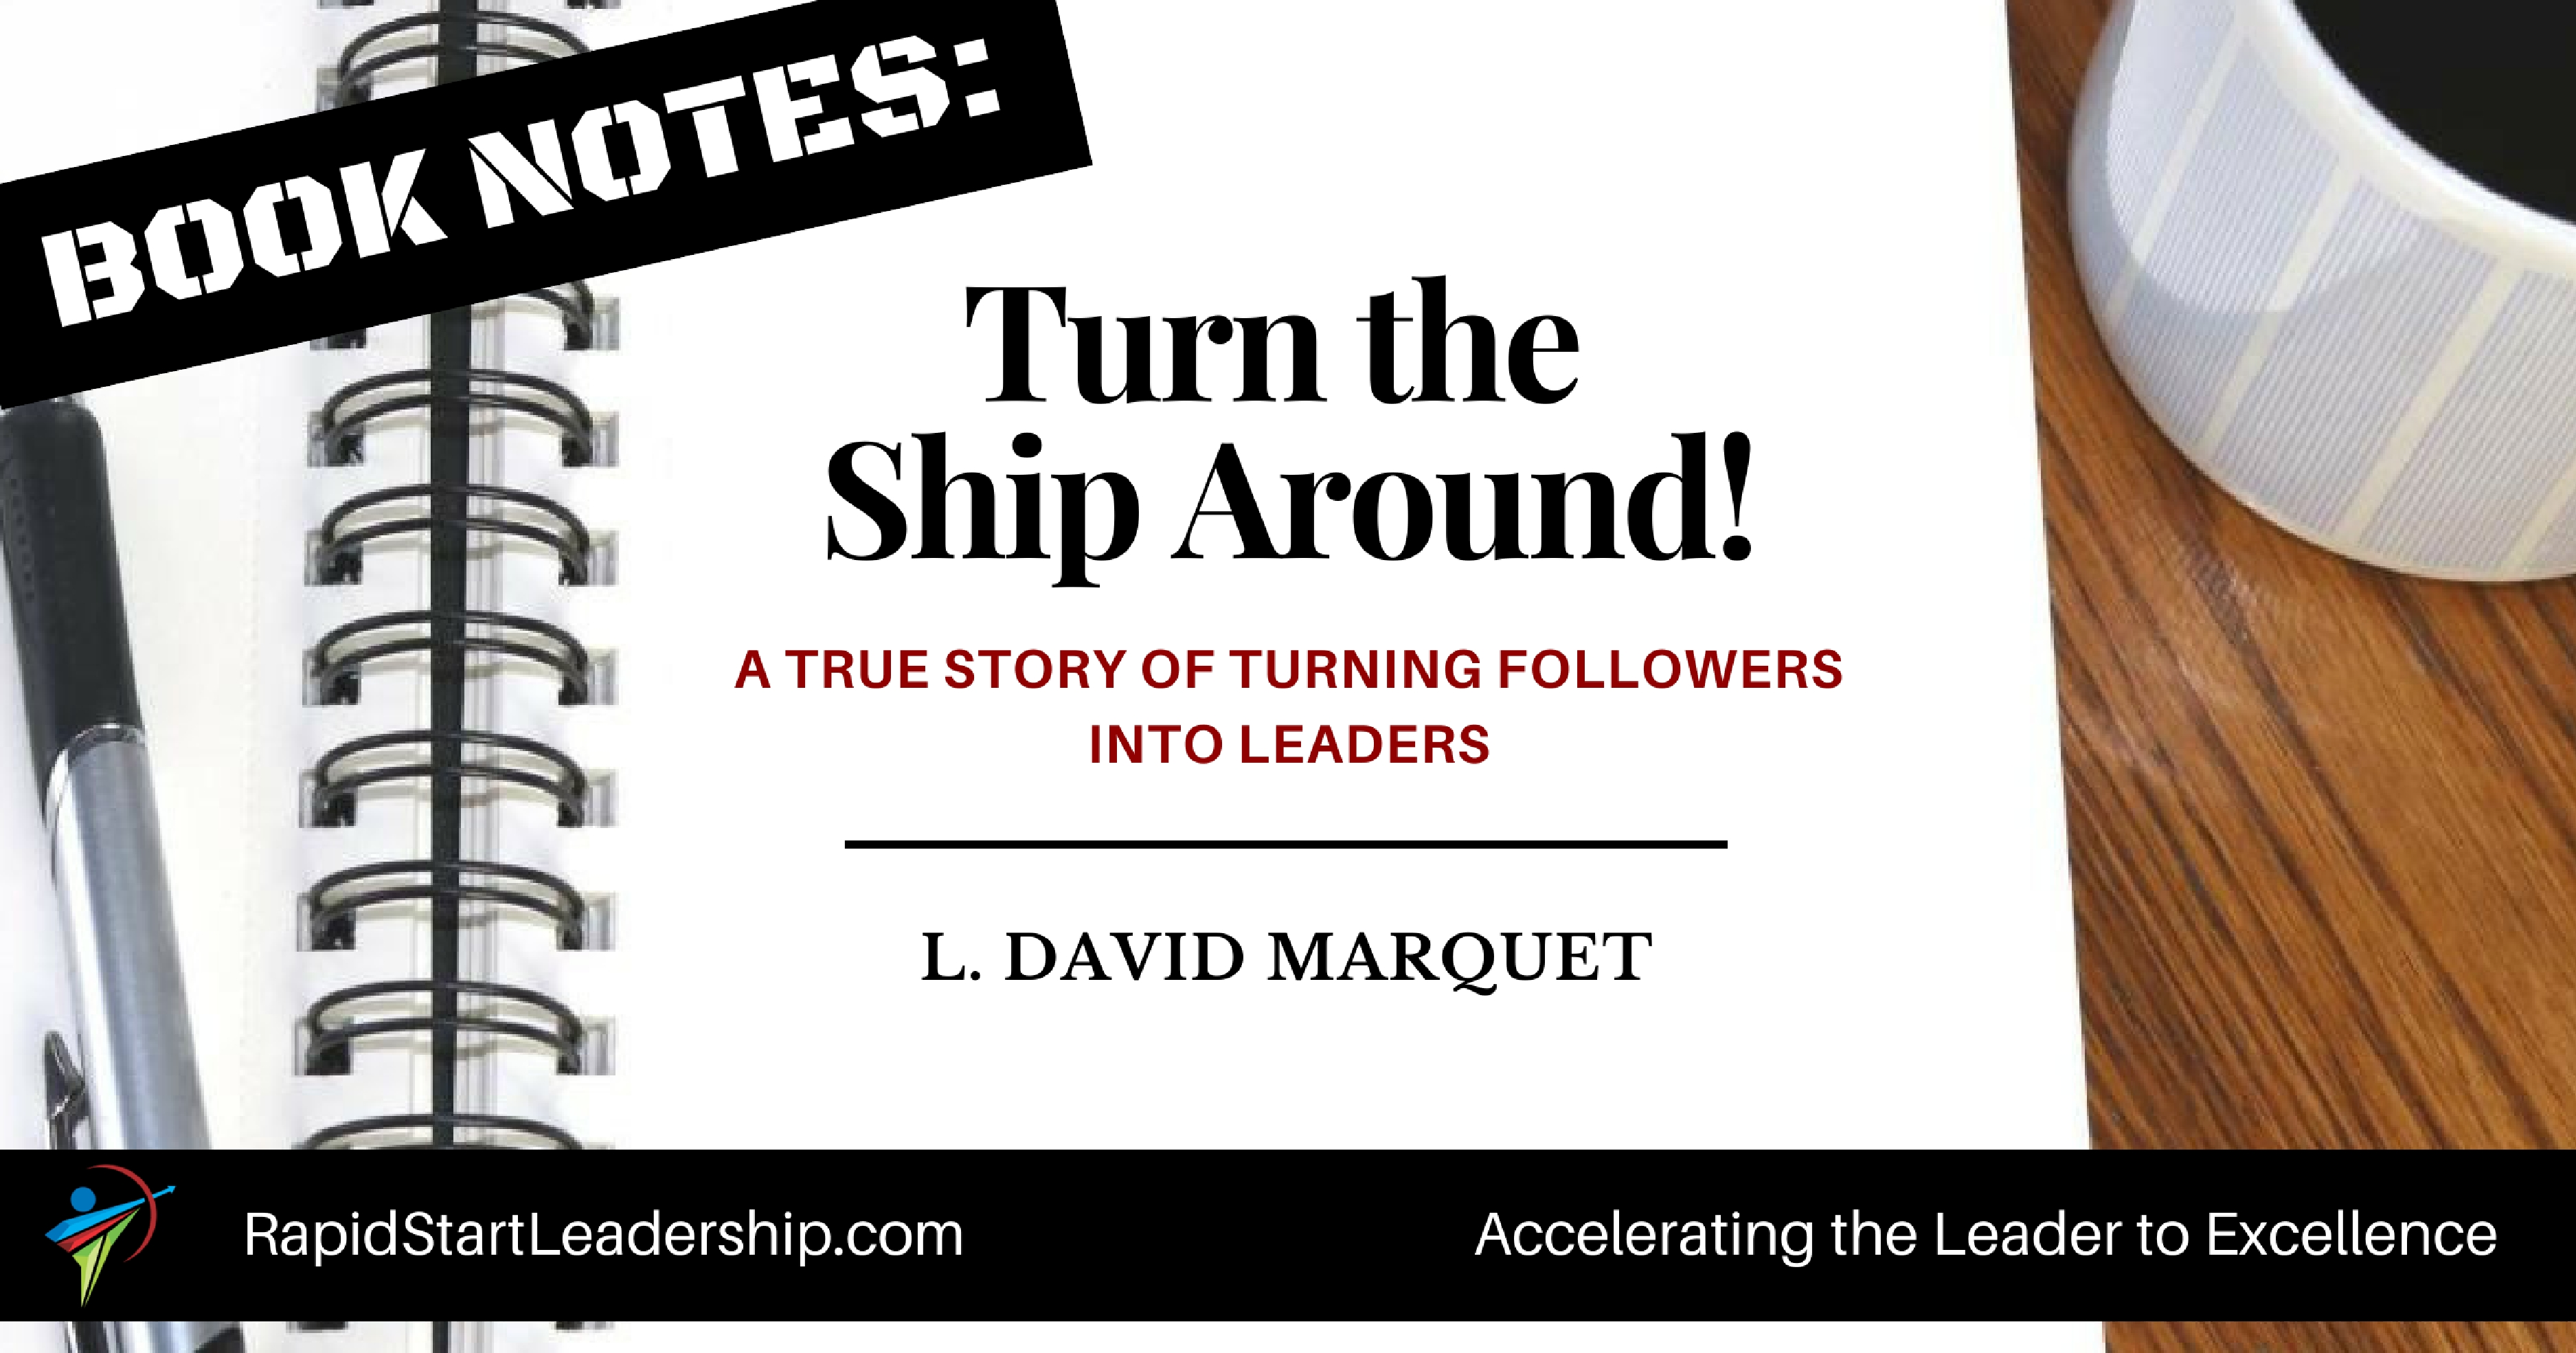 Turn the Ship Around - David Marquet